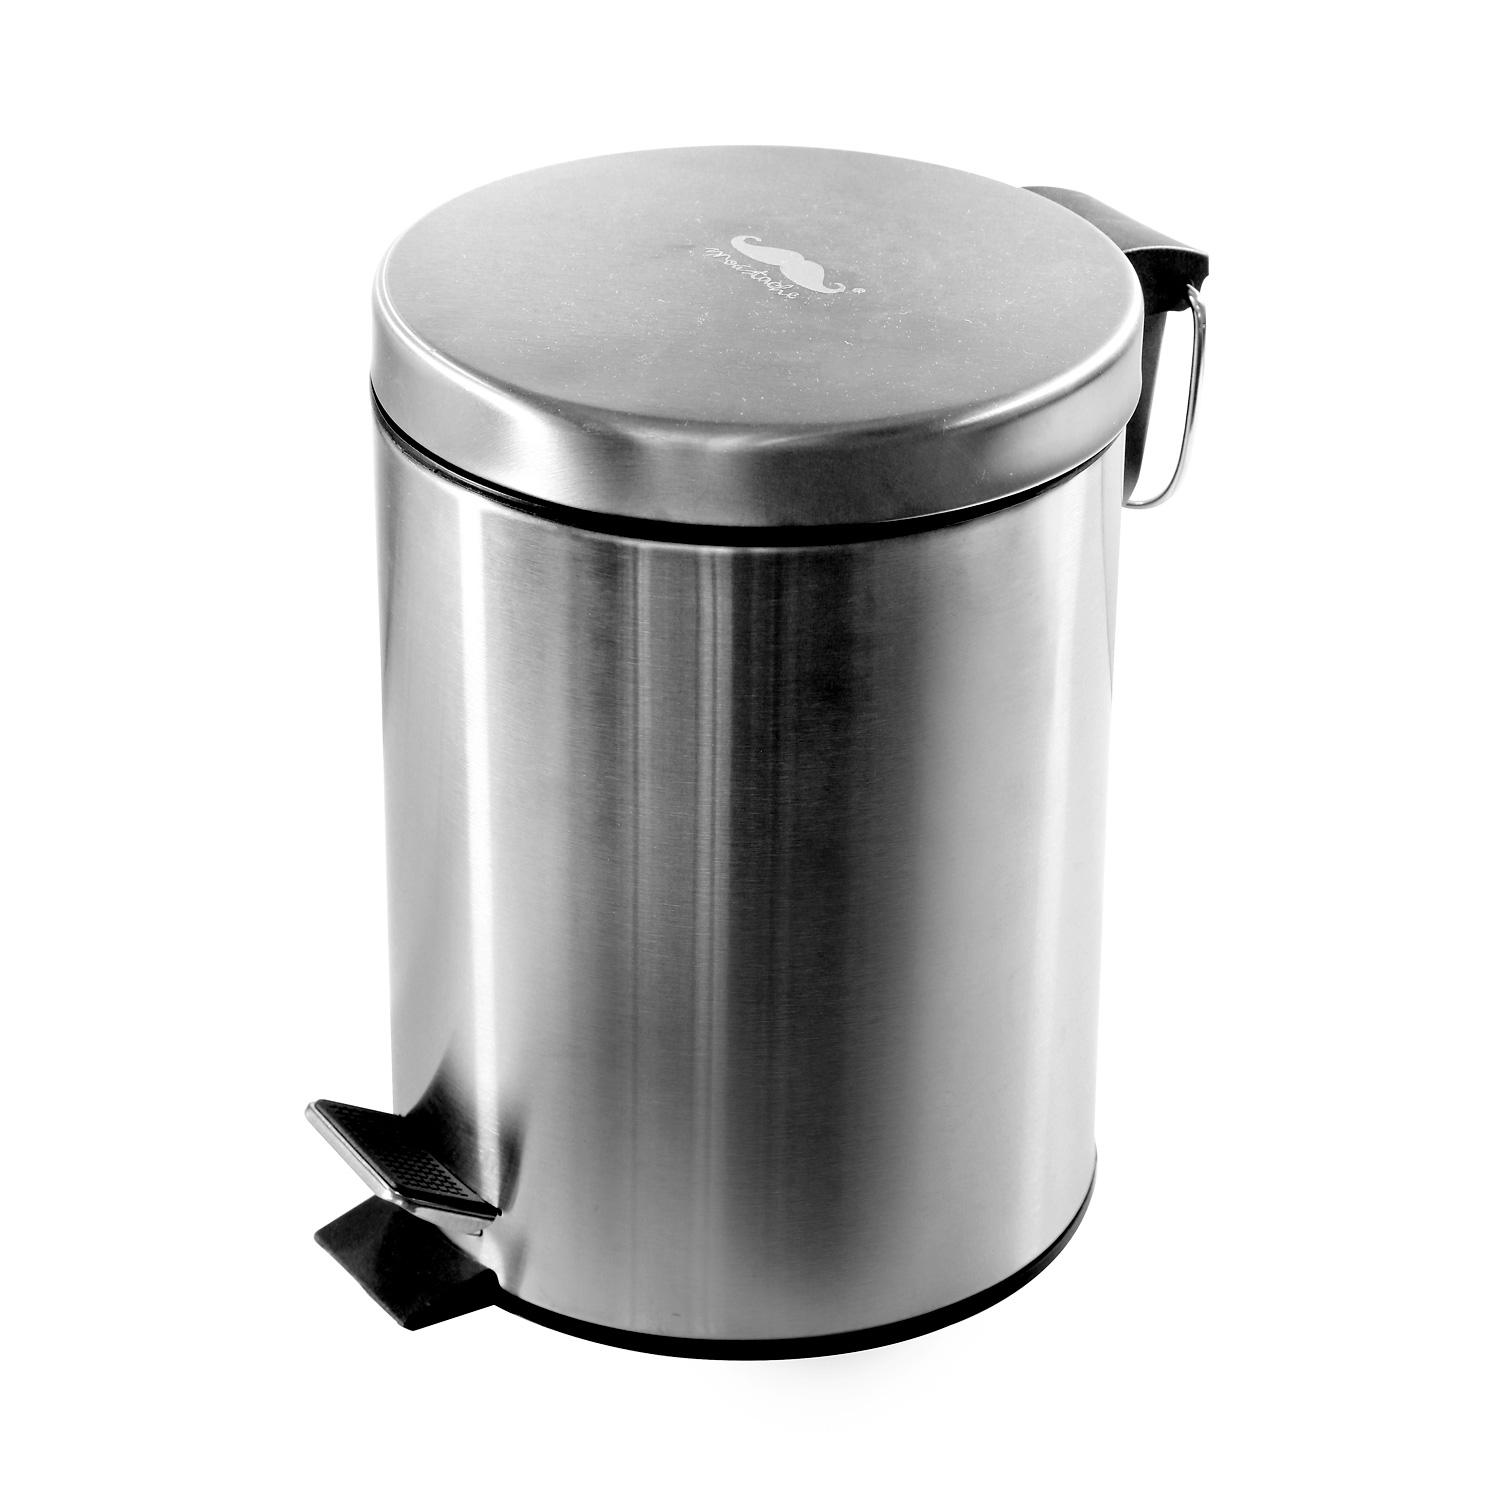 Stainless Steel Step Trash Can, 5L (20 x 27 cm) - Moustache®